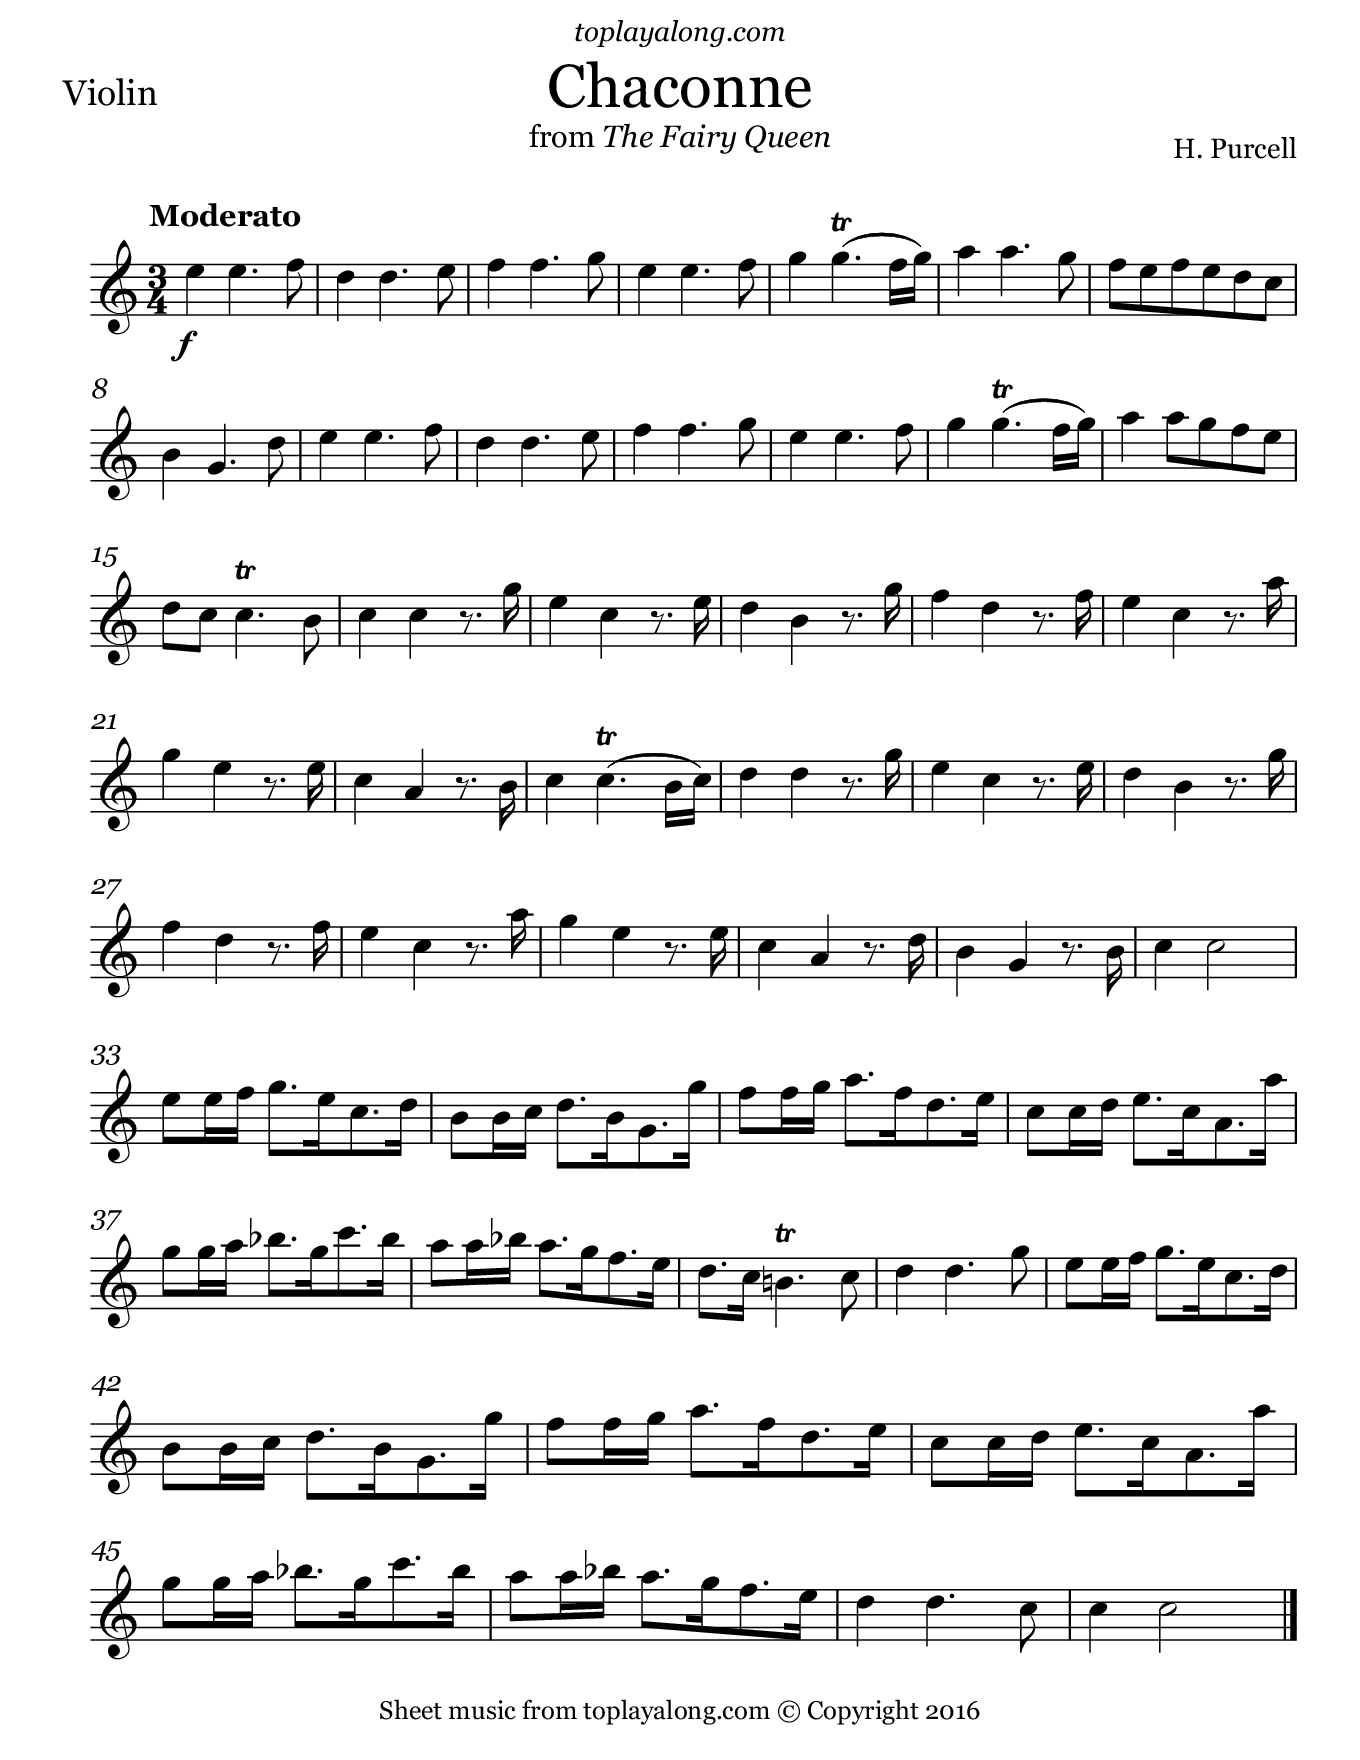 Chaconne from The Fairy Queen by Purcell. Sheet music for Violin, page 1.